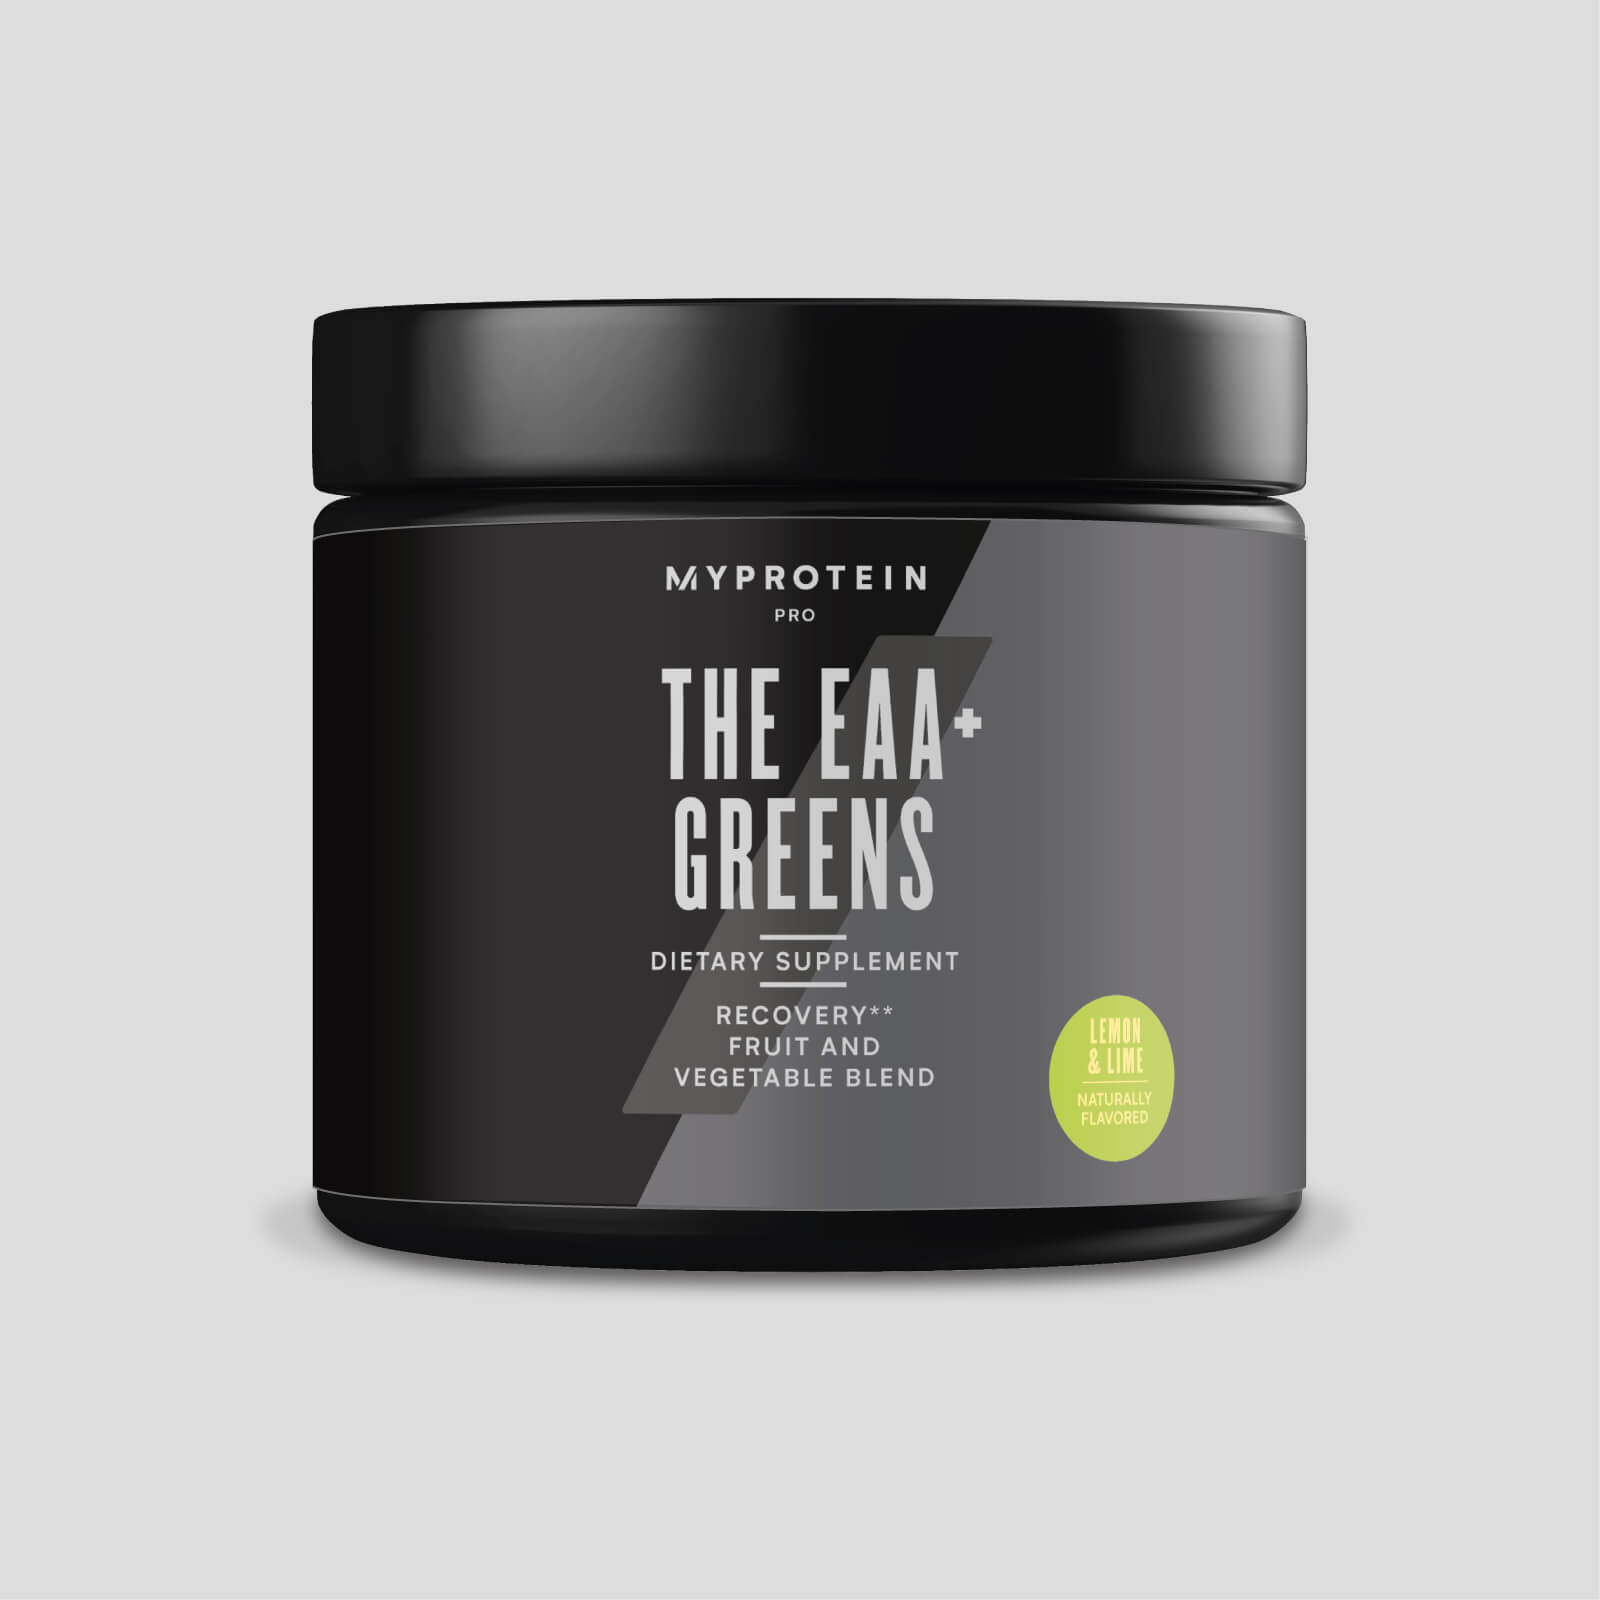 Buy THE EAA + Greens | MYPROTEIN™